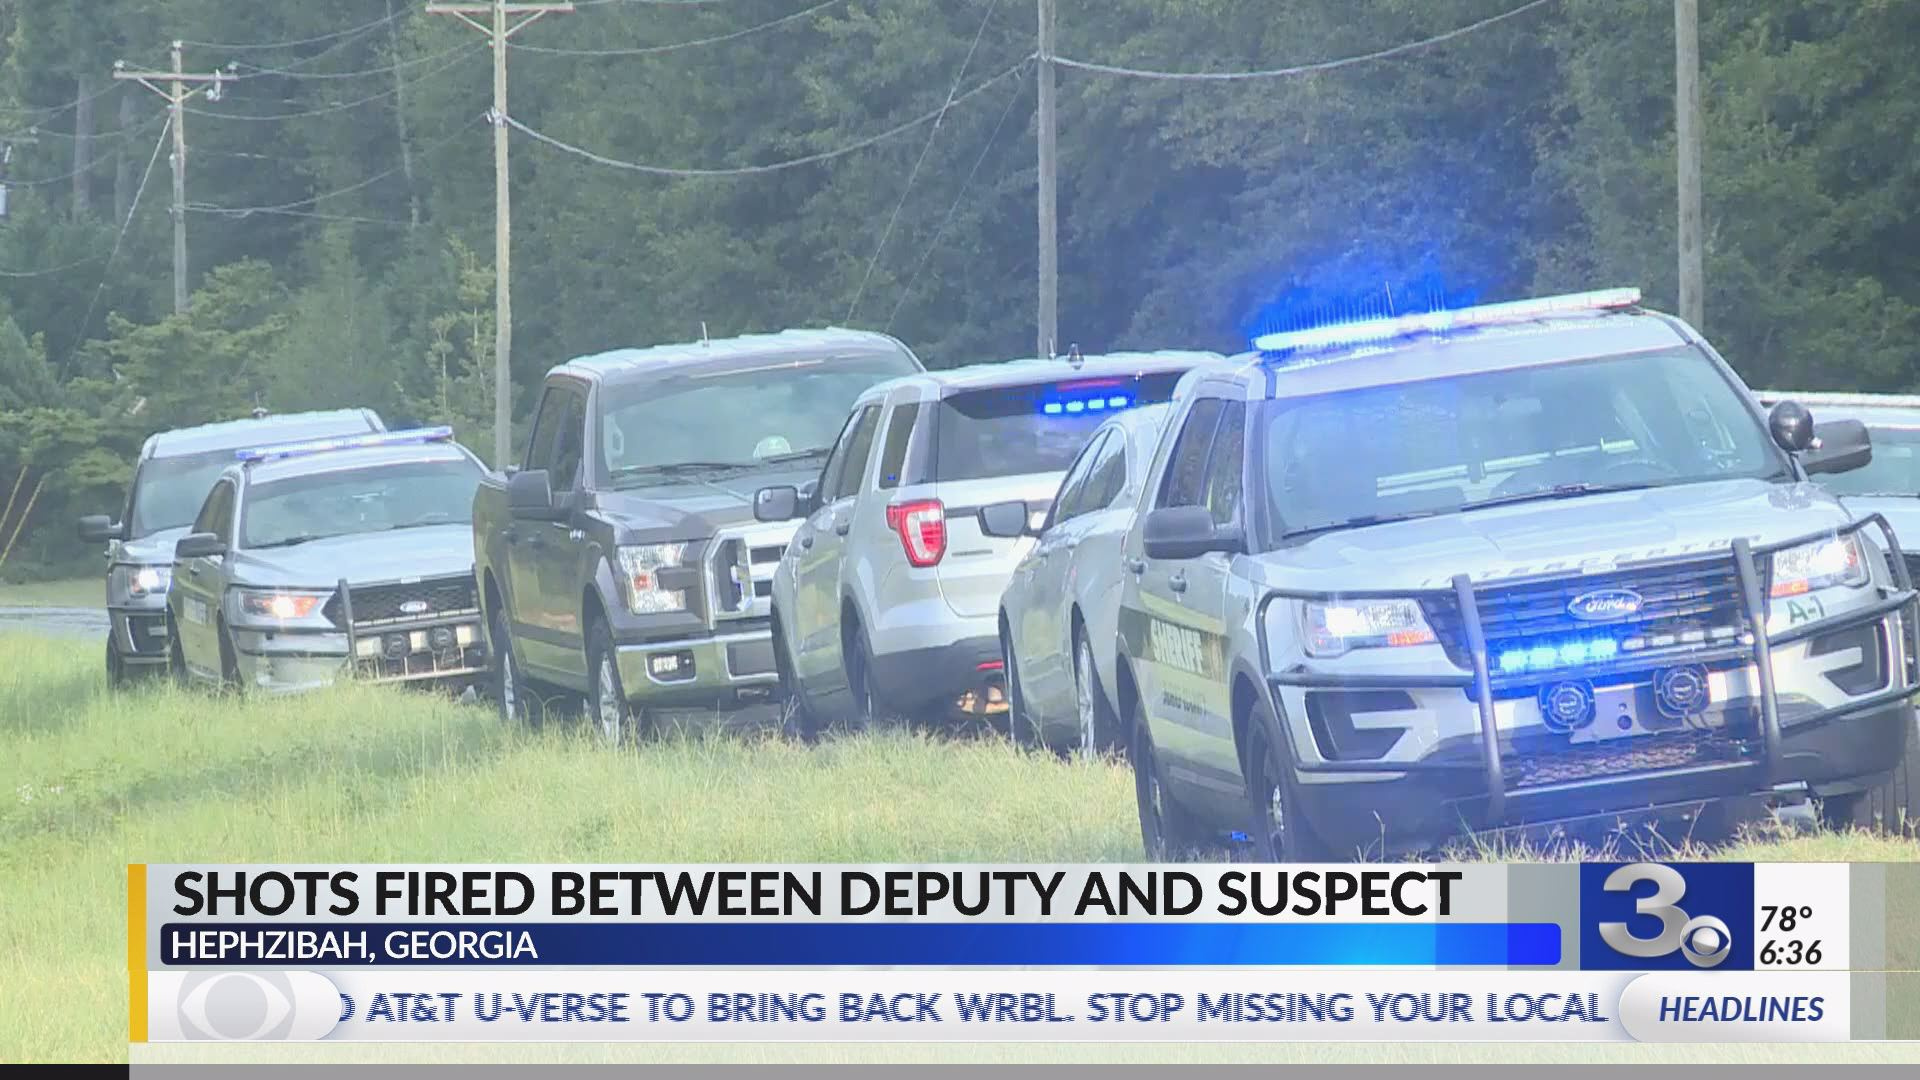 Georgia deputy, suspect exchange gunfire | WRBL